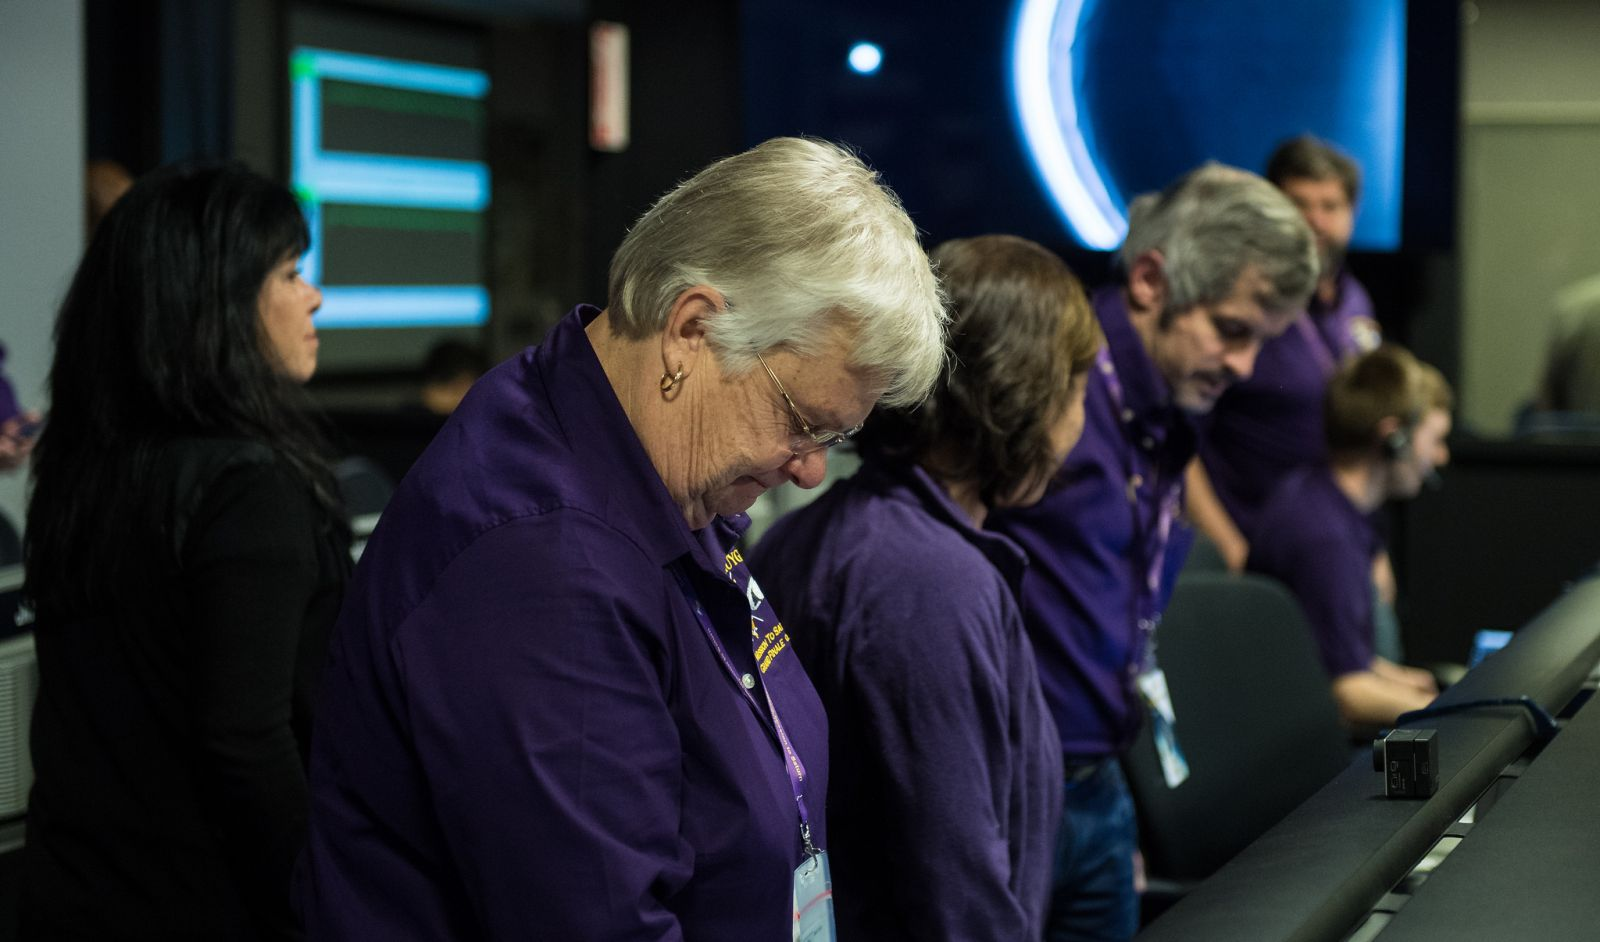 Julie Webster, spacecraft operations team manager for the Cassini mission. Photo Credit: Joel Kowsky / NASA